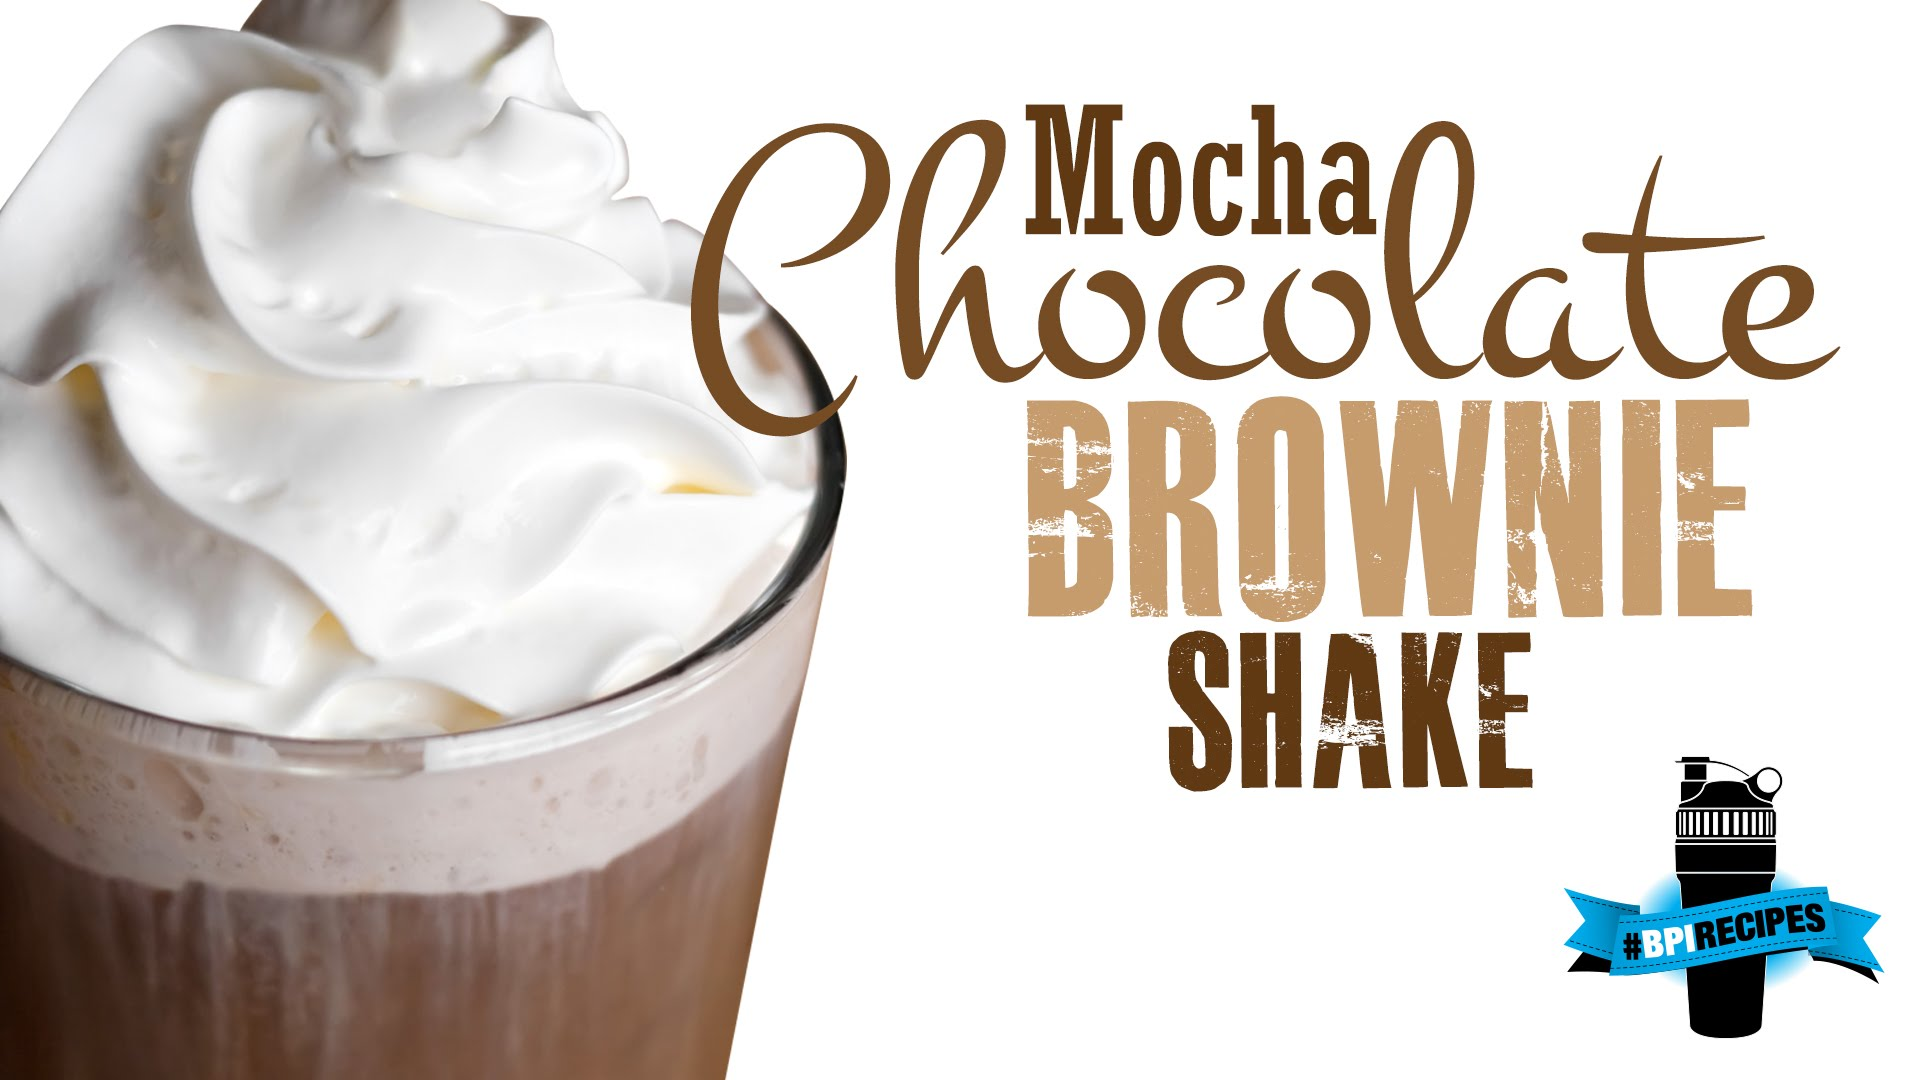 Chocolate-Protein-Shake-Whey-Protein-Recipes-BPI-Sports-2